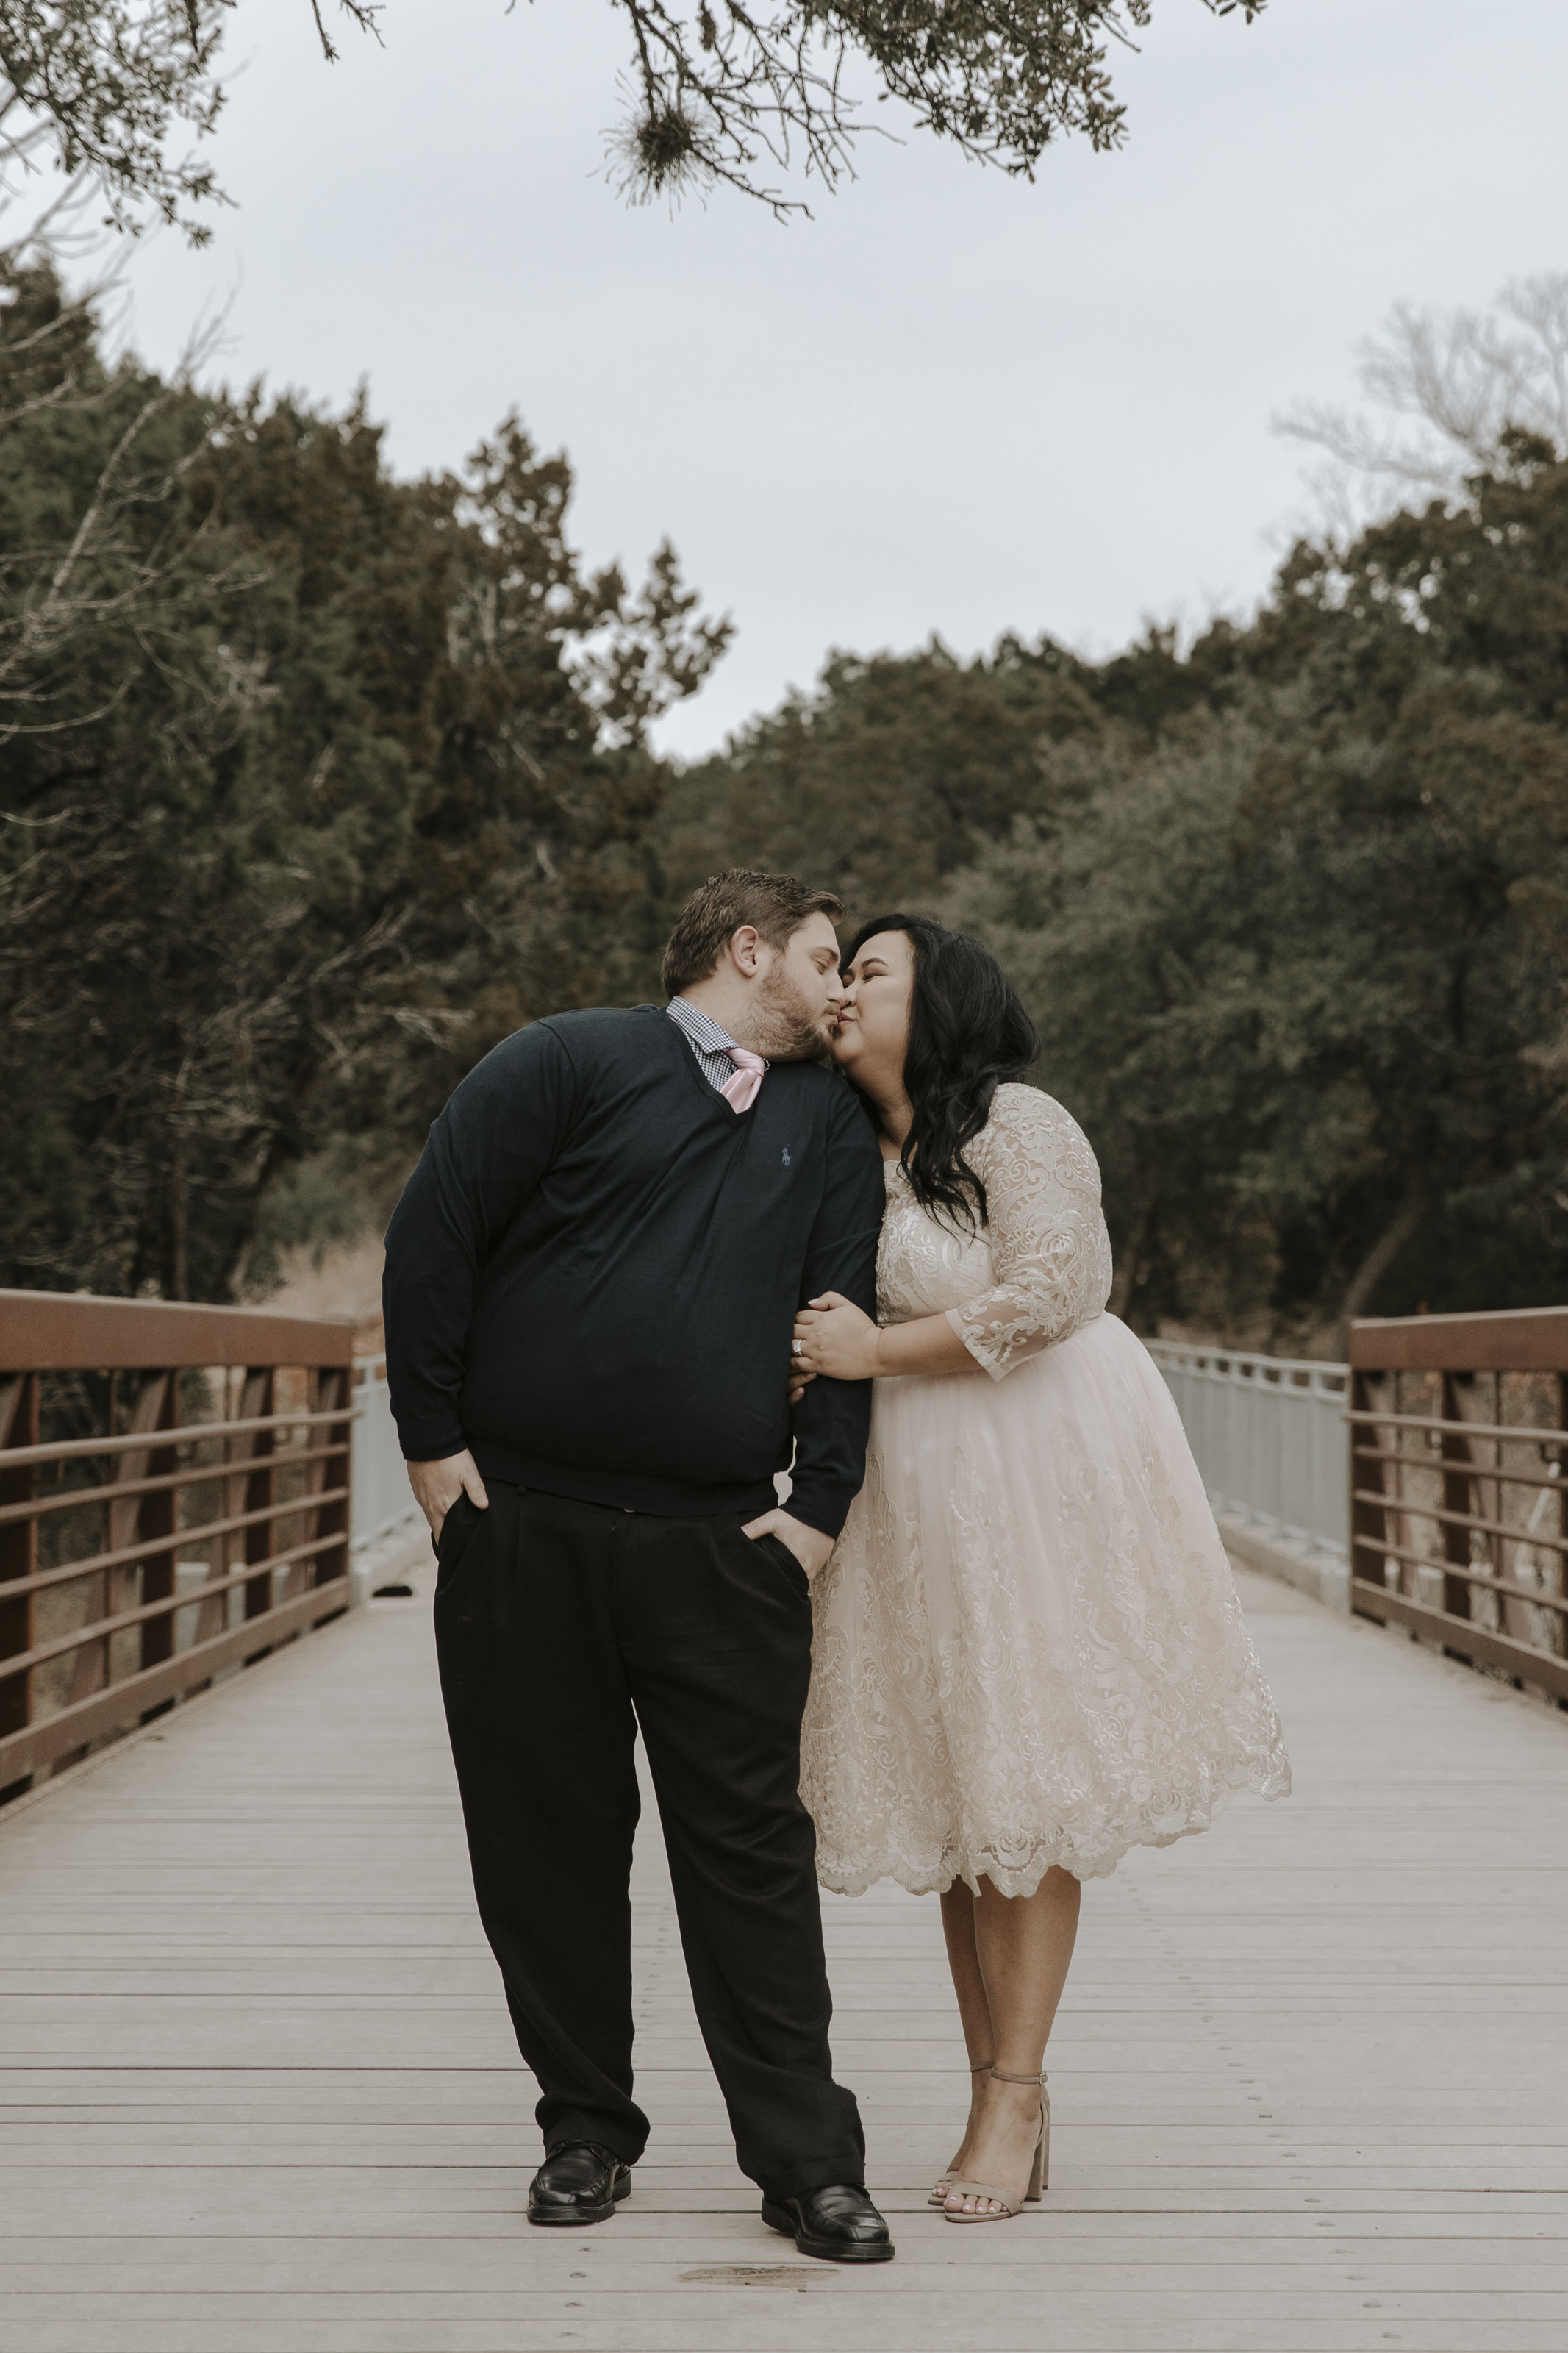 S-A-WALNUTCREEK-ENGAGEMENTS-JOHN-DAVID-WEDDINGS27185.jpg